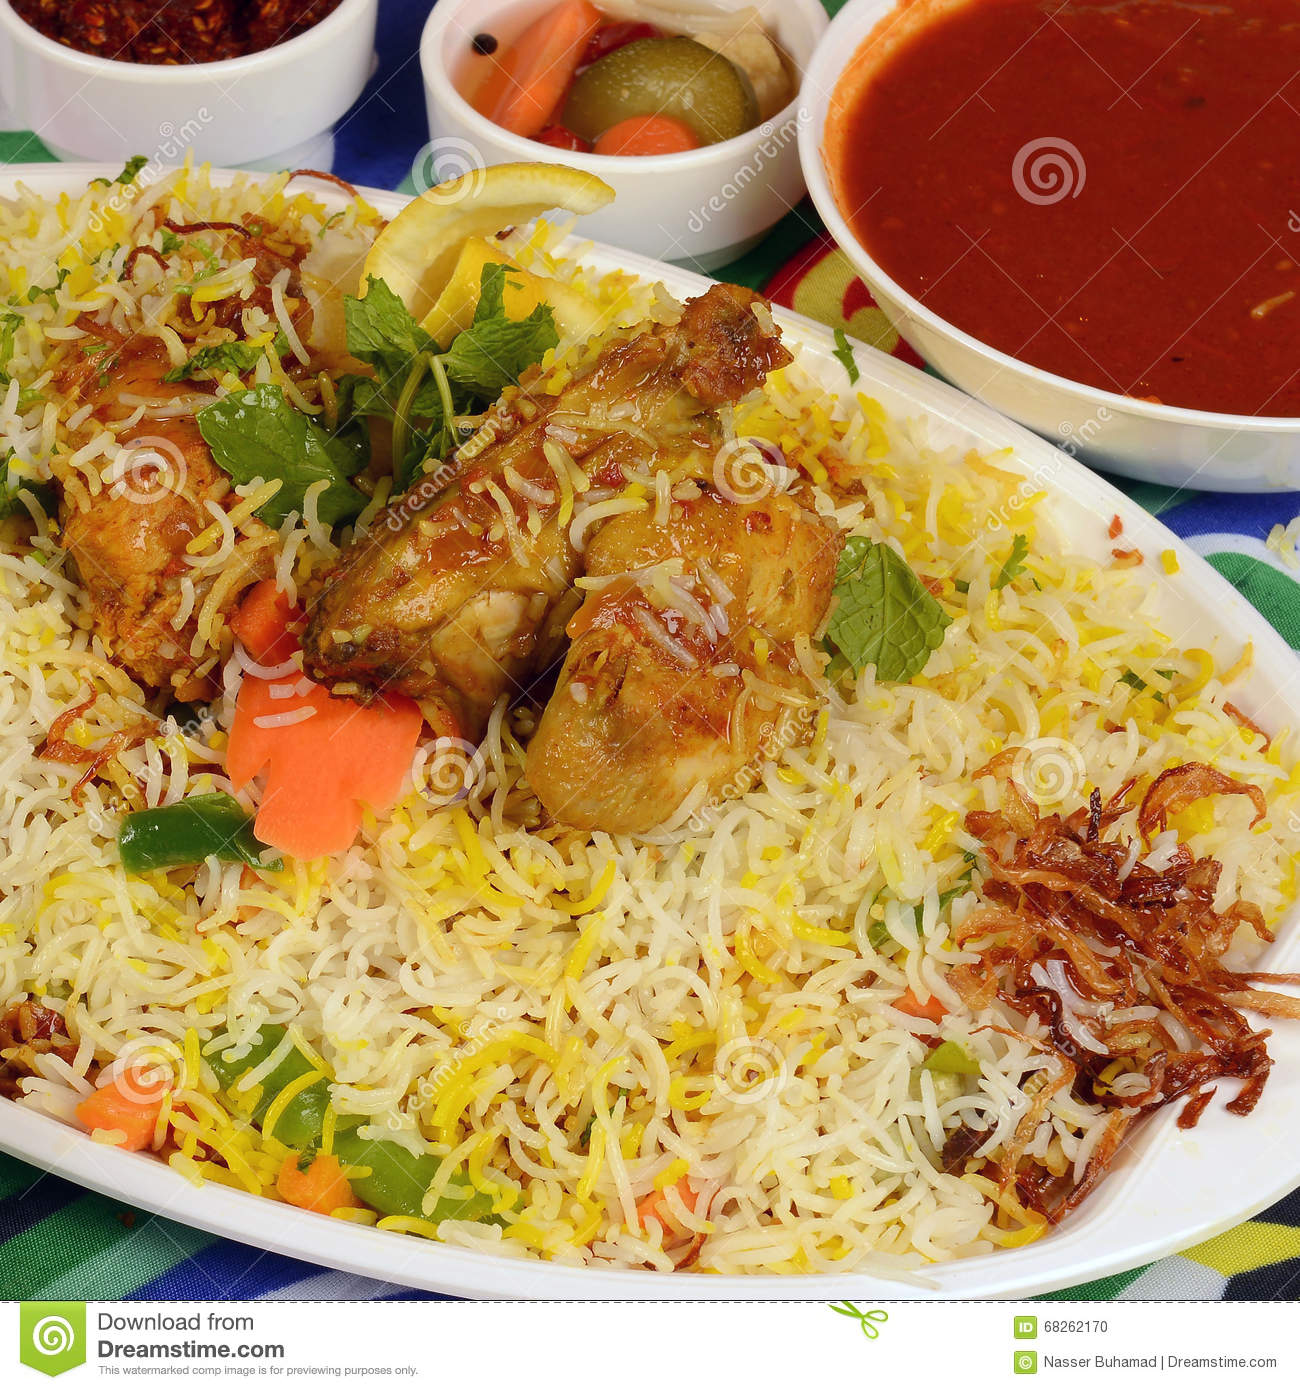 Kapsa chicken rice recipe stock photo image of kabsah 68262170 beef chicken mixed rice dishes that originates in yemen middle eastern food forumfinder Gallery